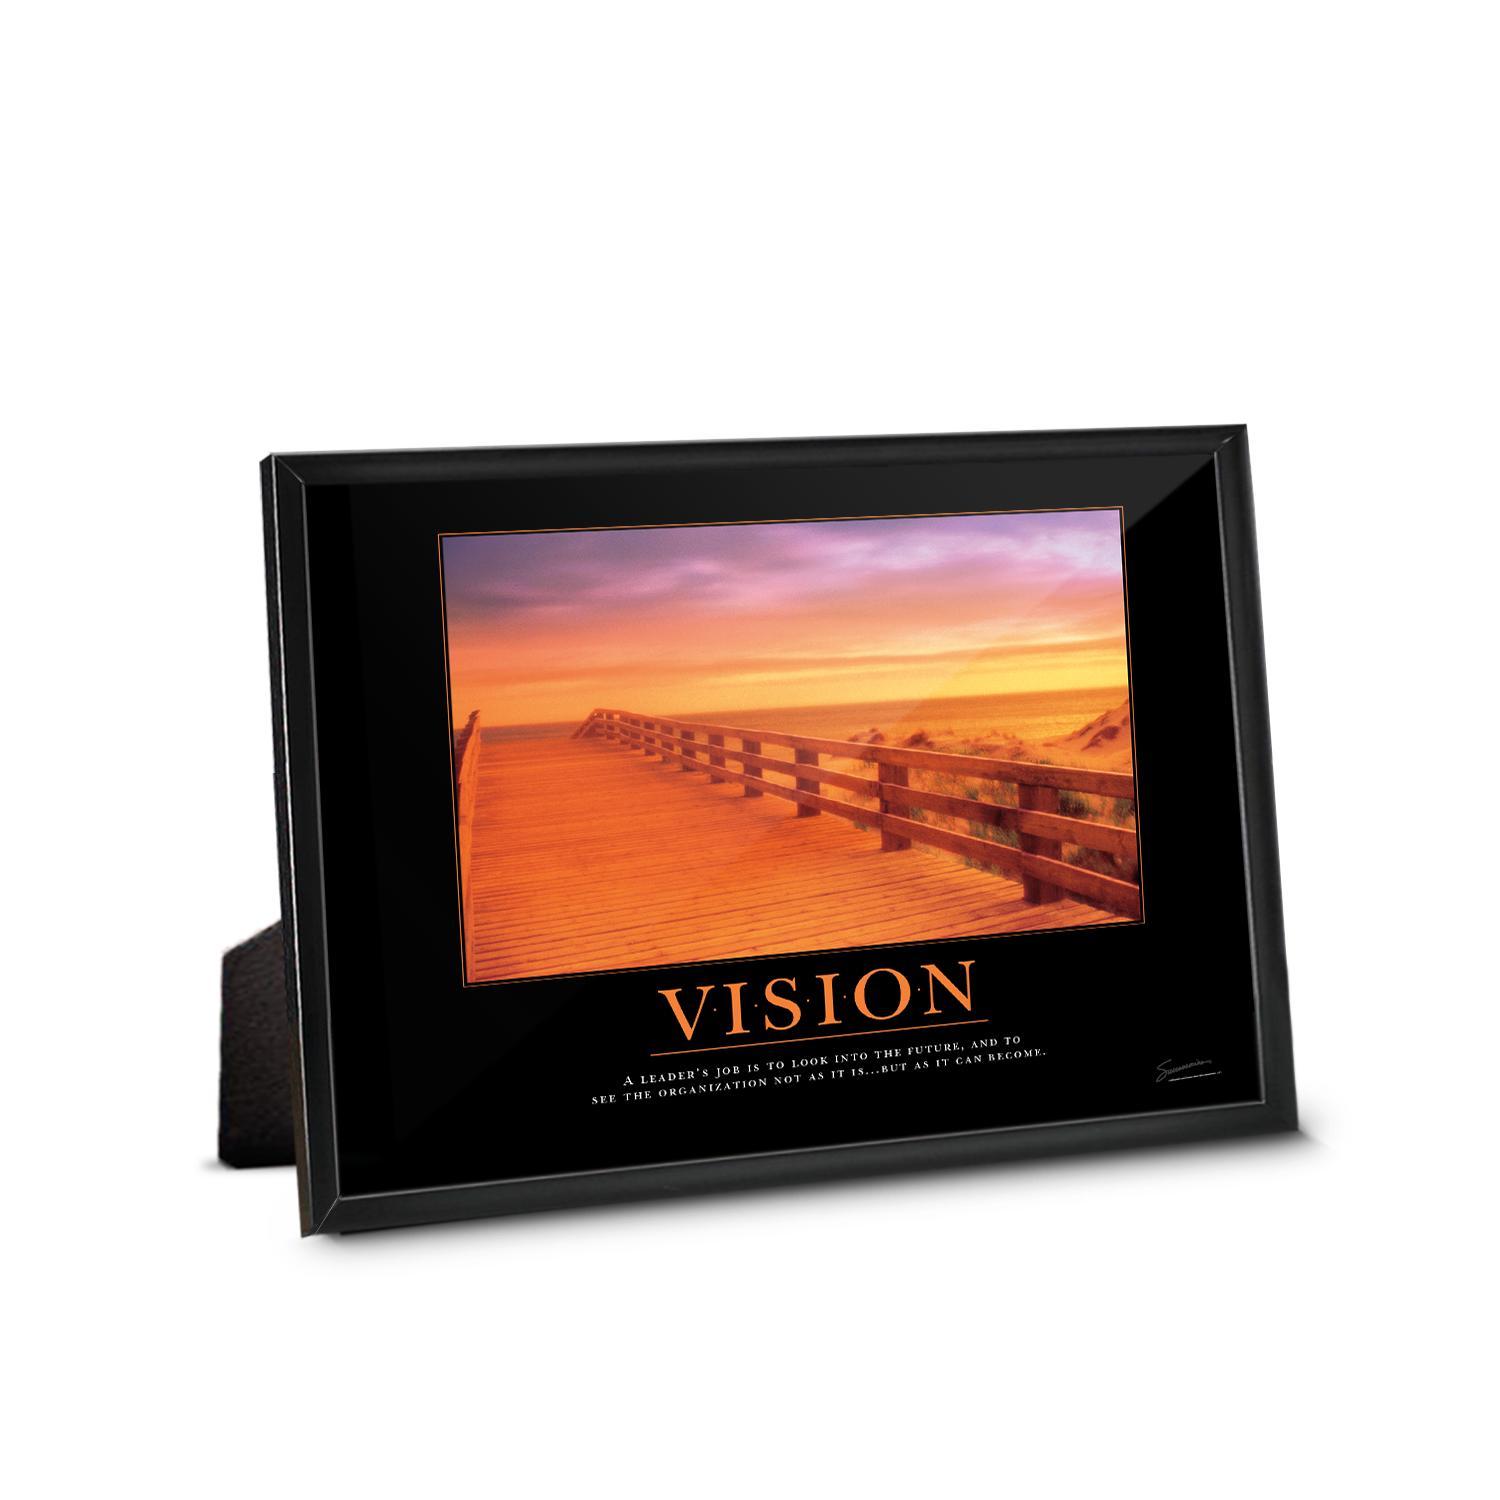 Vision Boardwalk Framed Desktop Print